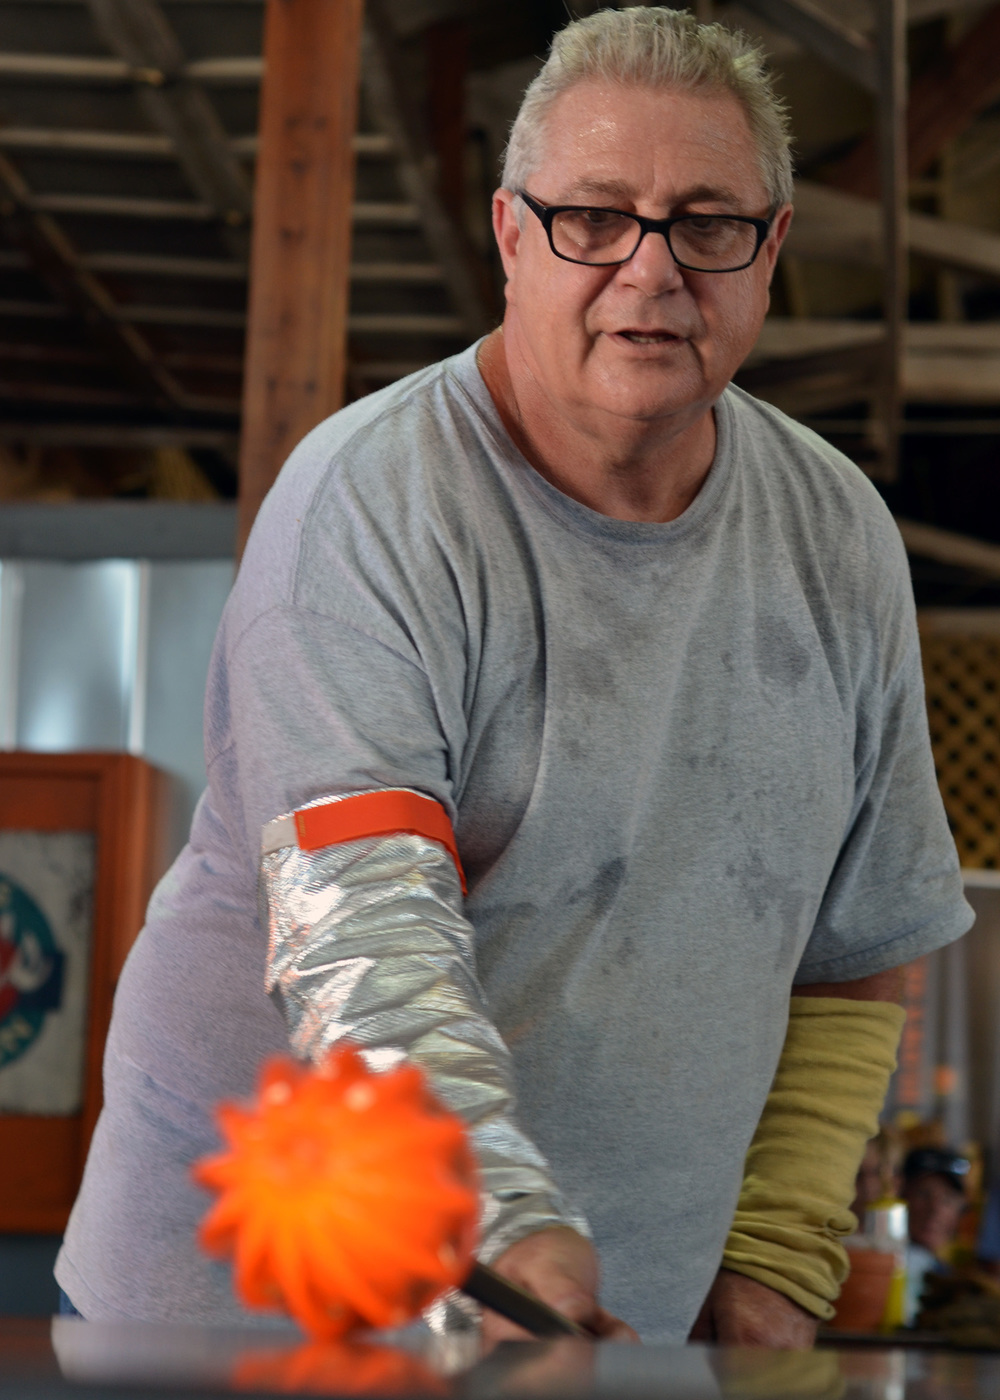 Ed Streeter making a glass pumpkin